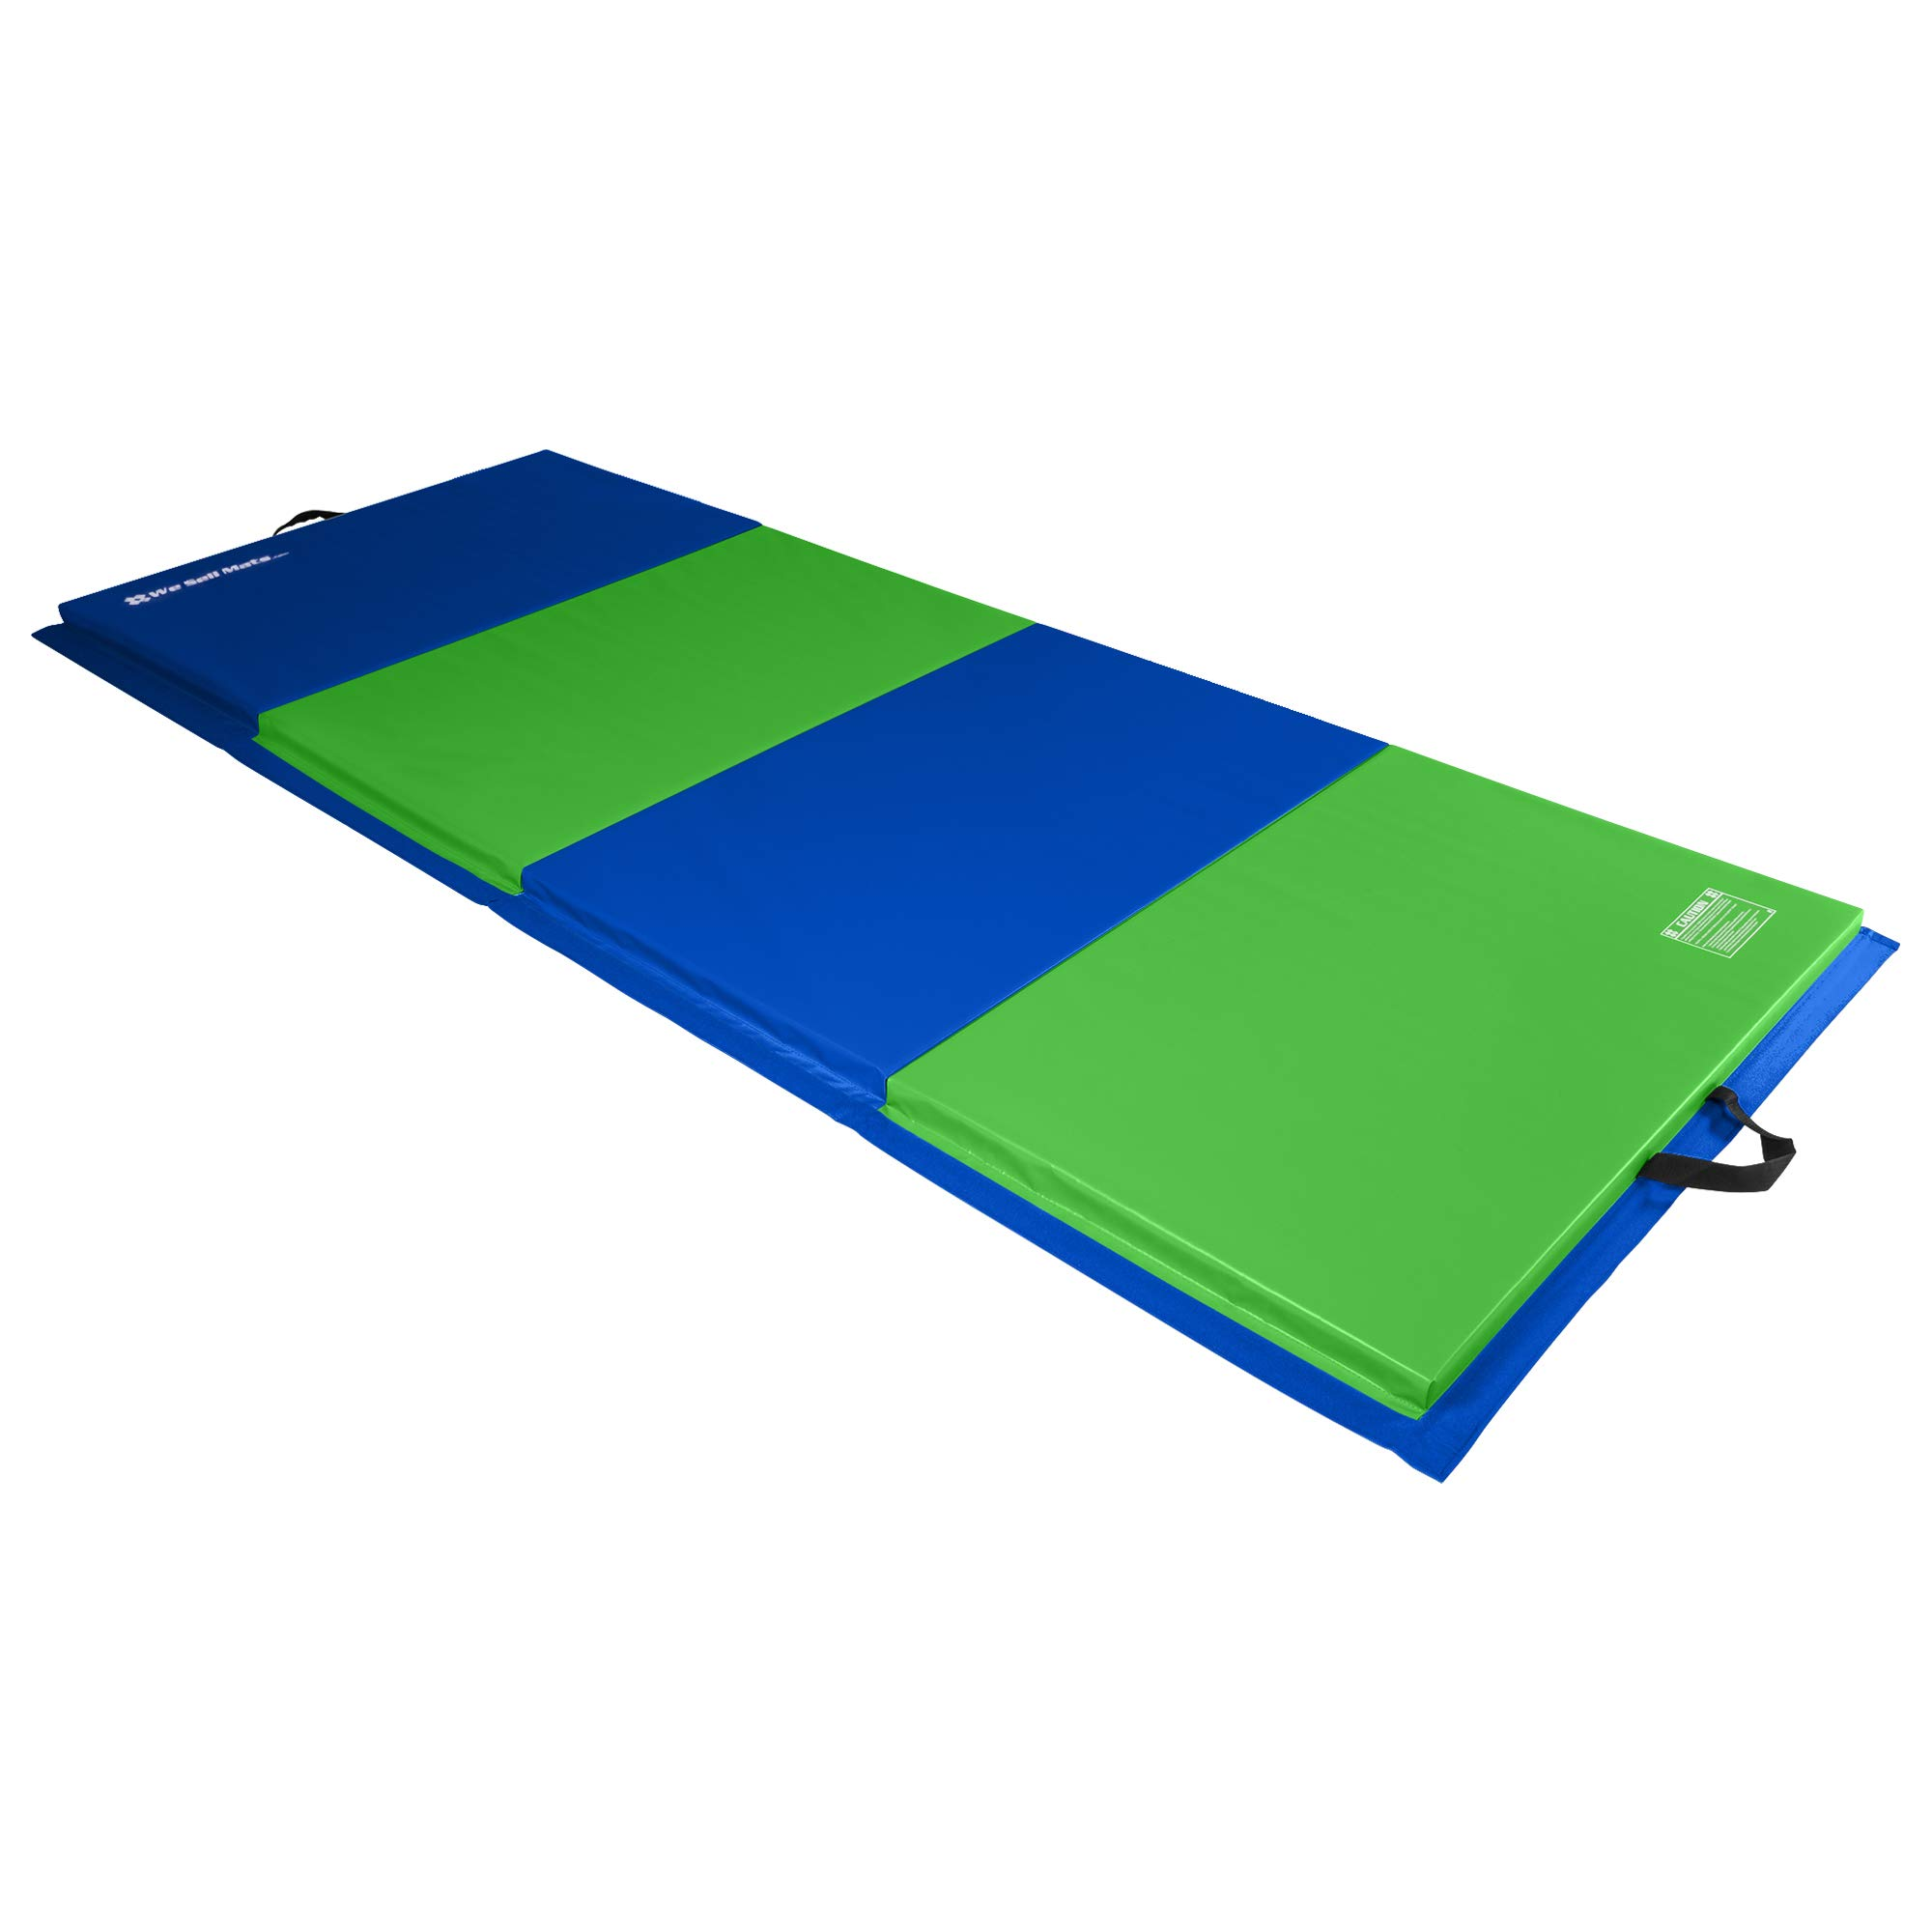 We Sell Mats 4 ft x 10 ft x 2 in Personal Fitness & Exercise Mat, Lightweight and Folds for Carrying